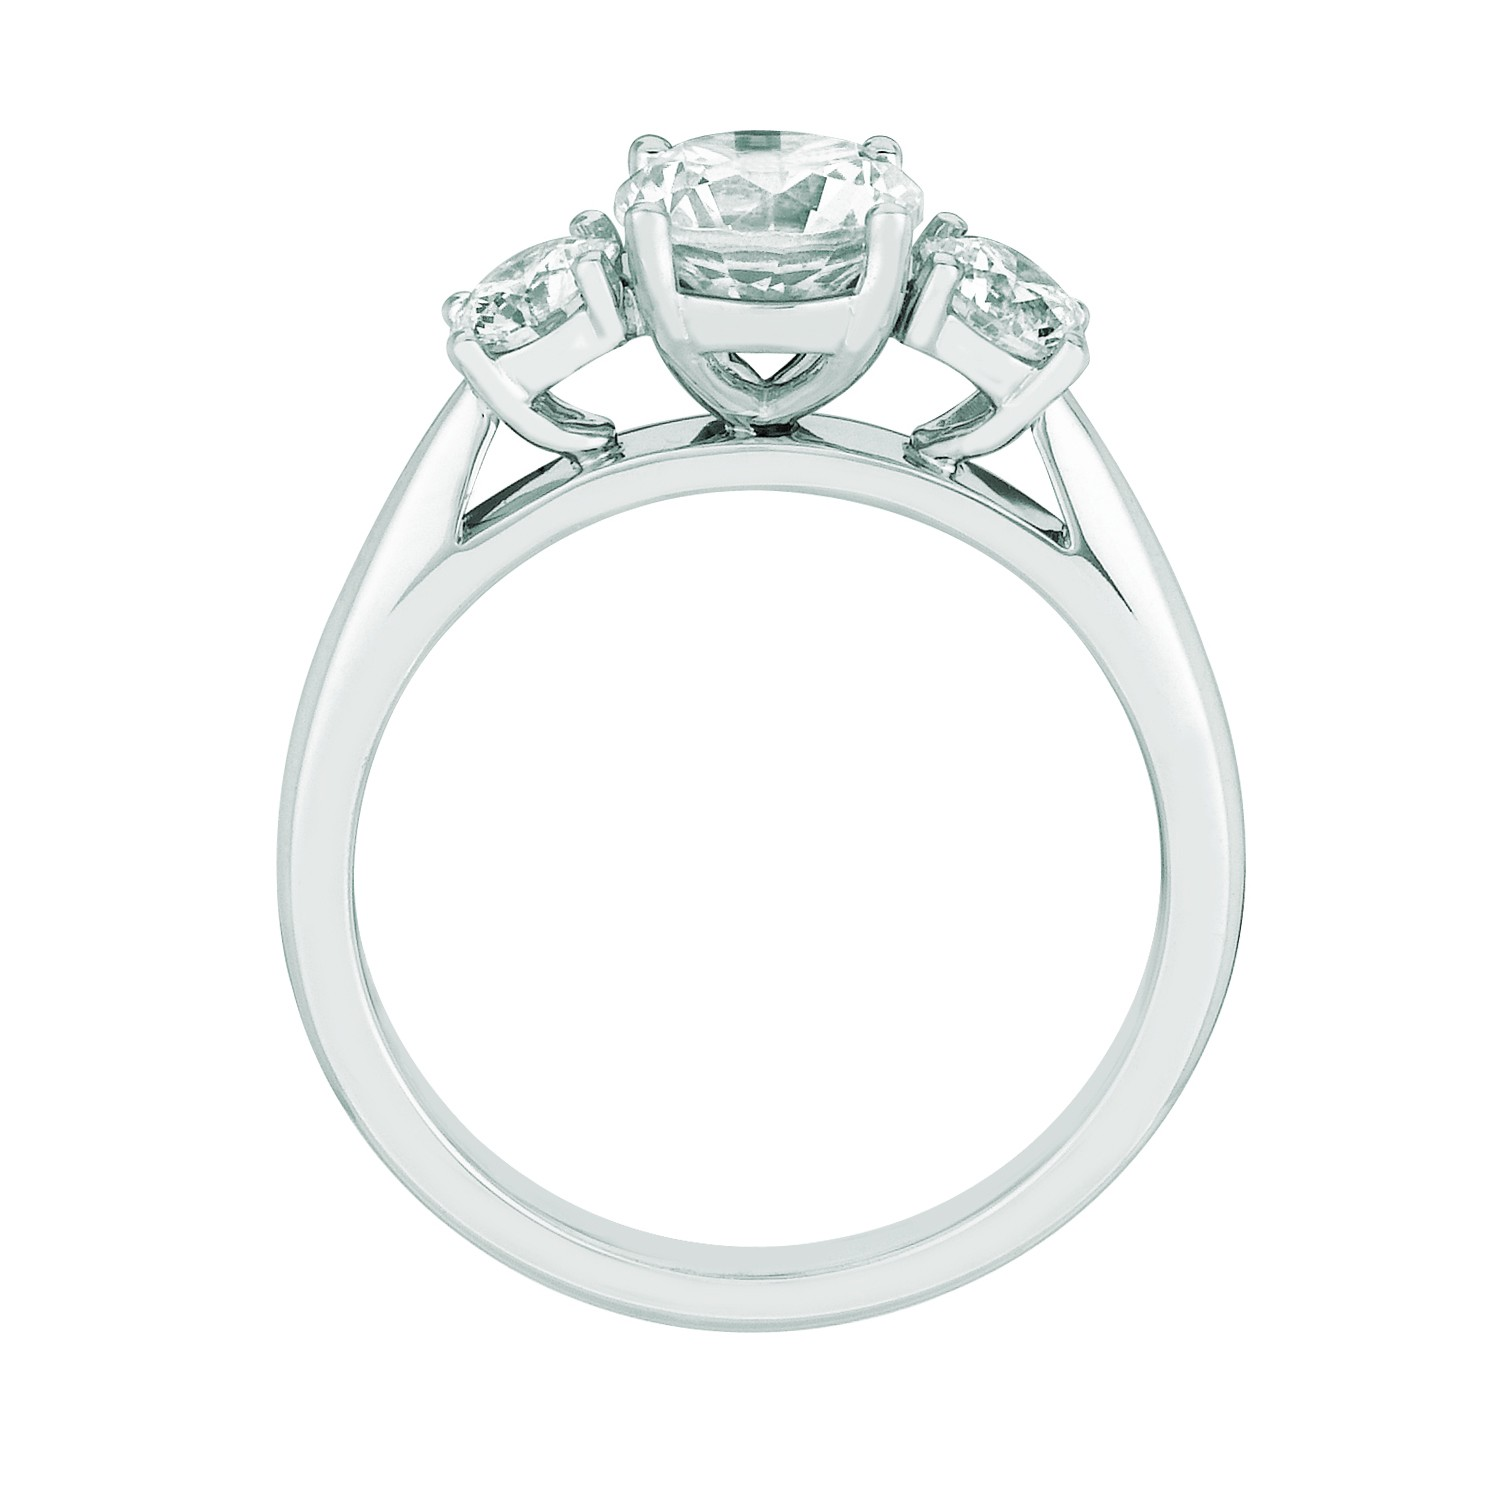 the gallery for gt verragio engagement rings on finger